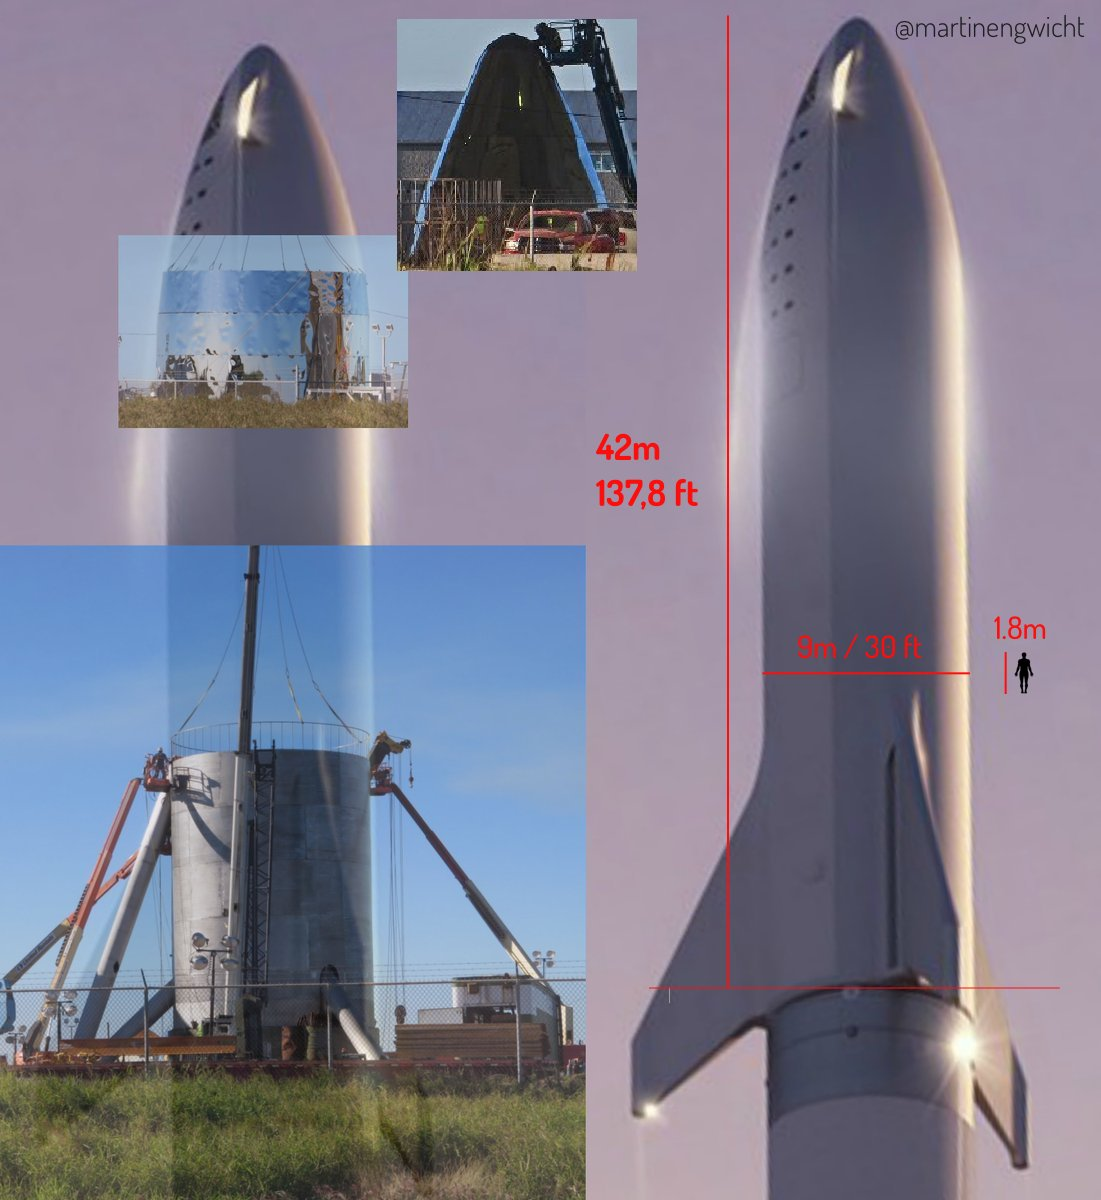 Spacex To Launch A Starship Spaceship Prototype This Spring The Muskette